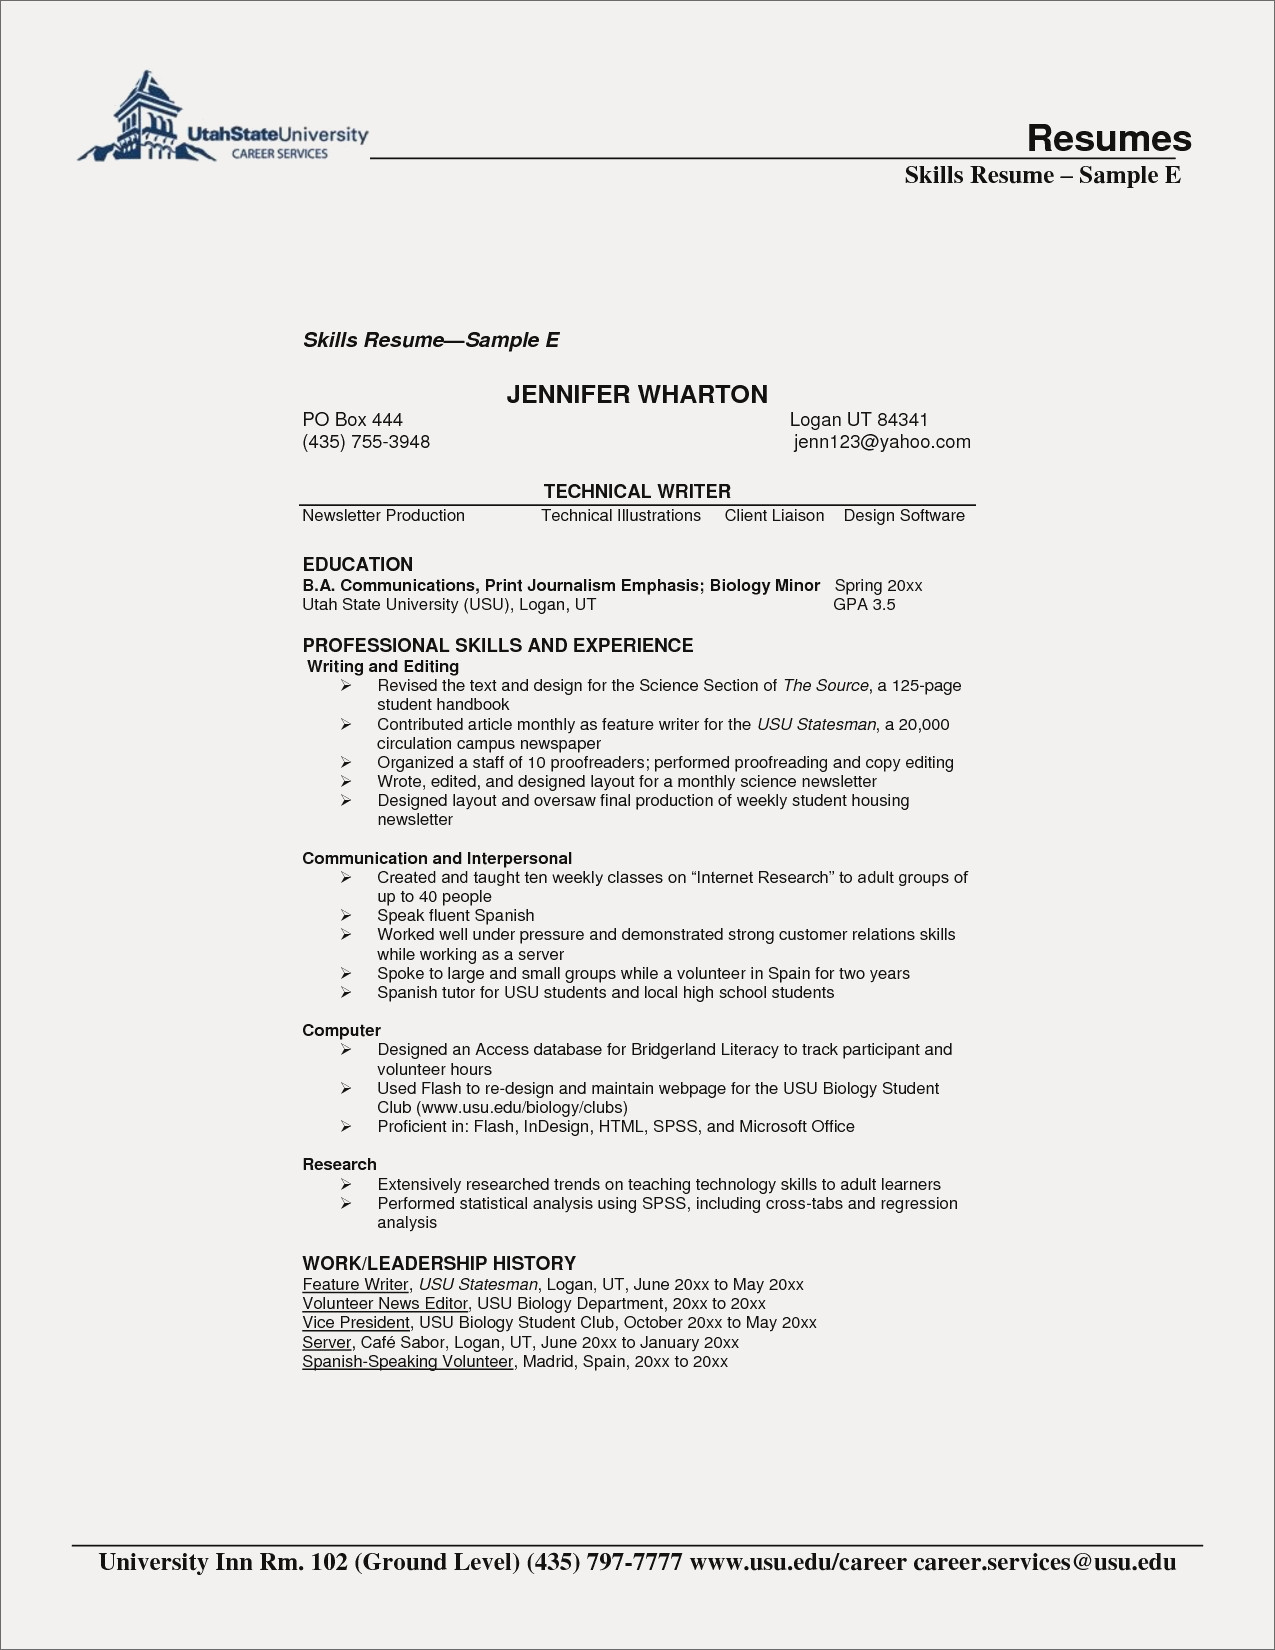 Examples Of Resume Skills - Cheap Resumes Fresh Puter Skills Example Unique Examples Resumes